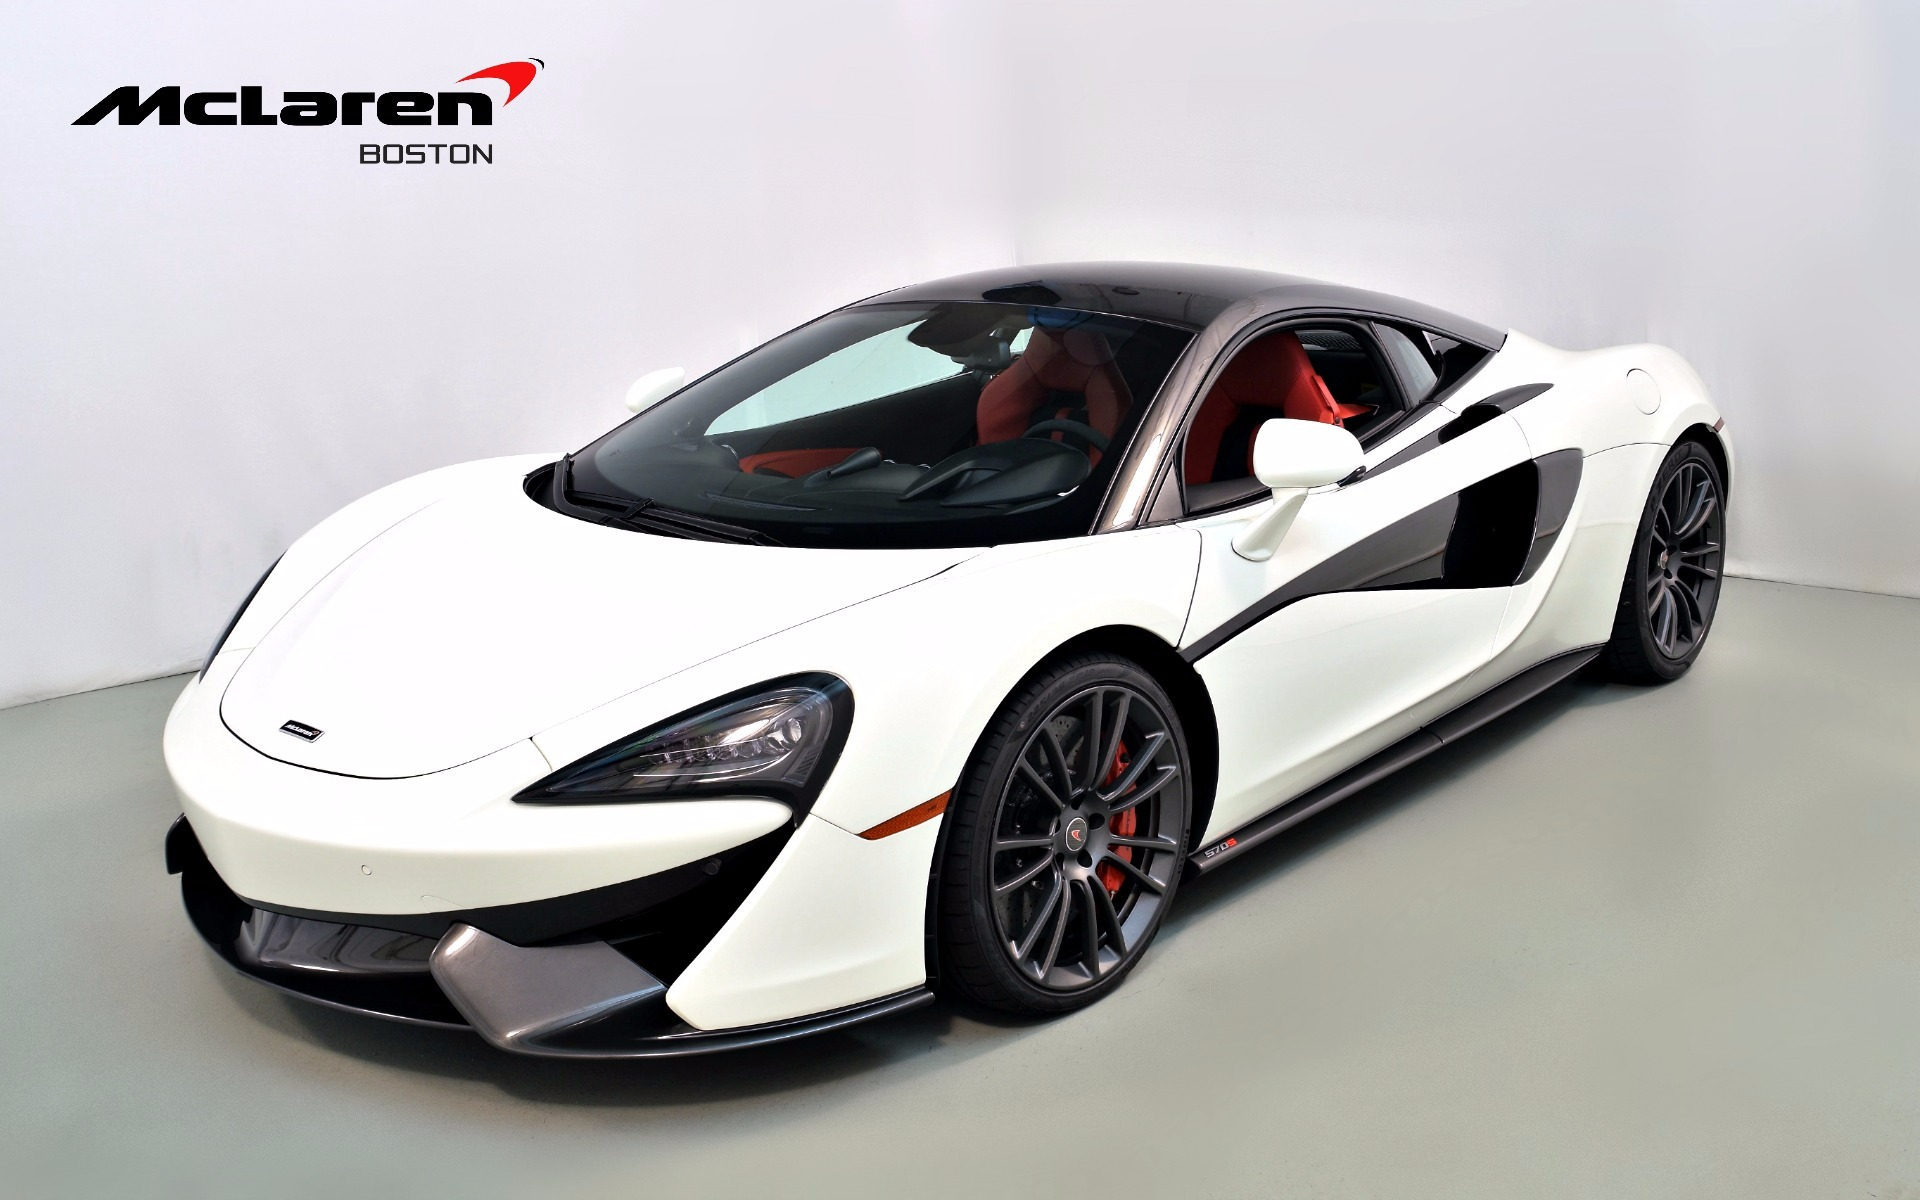 2017 McLaren 570S For Sale in Norwell, MA 003961 | Mclaren Boston